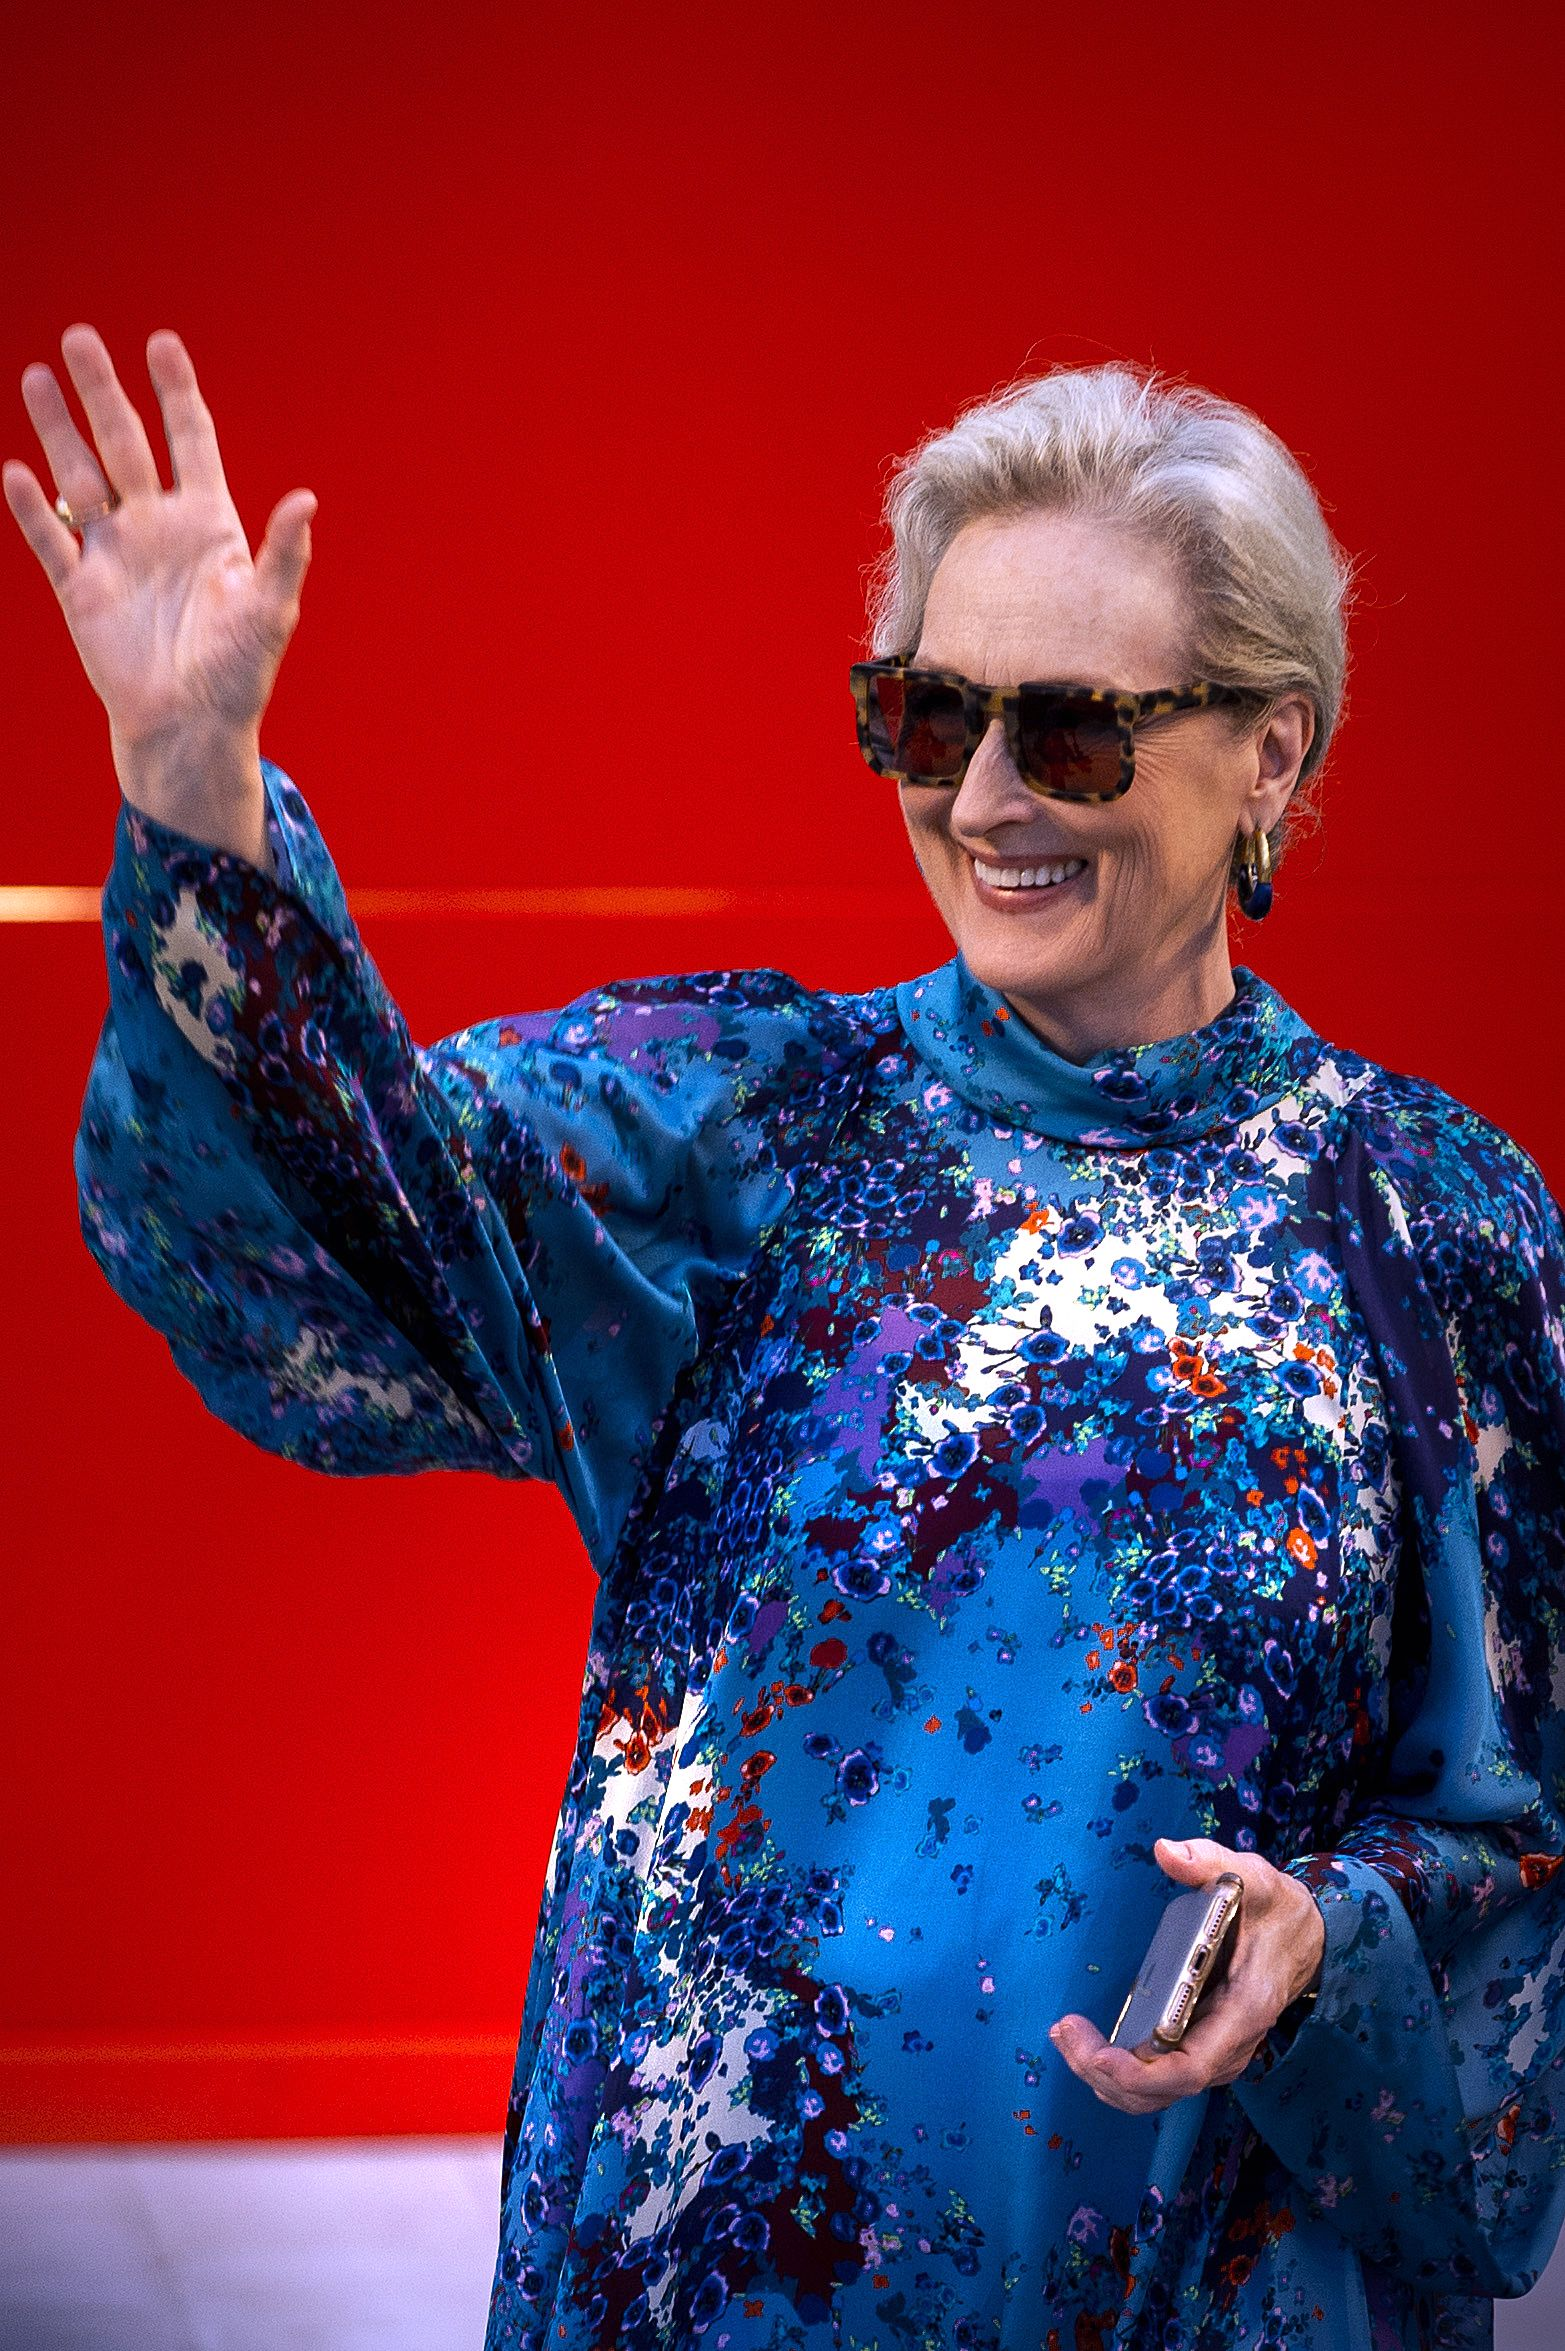 Meryl Streep will attend her first ever Met Gala next May